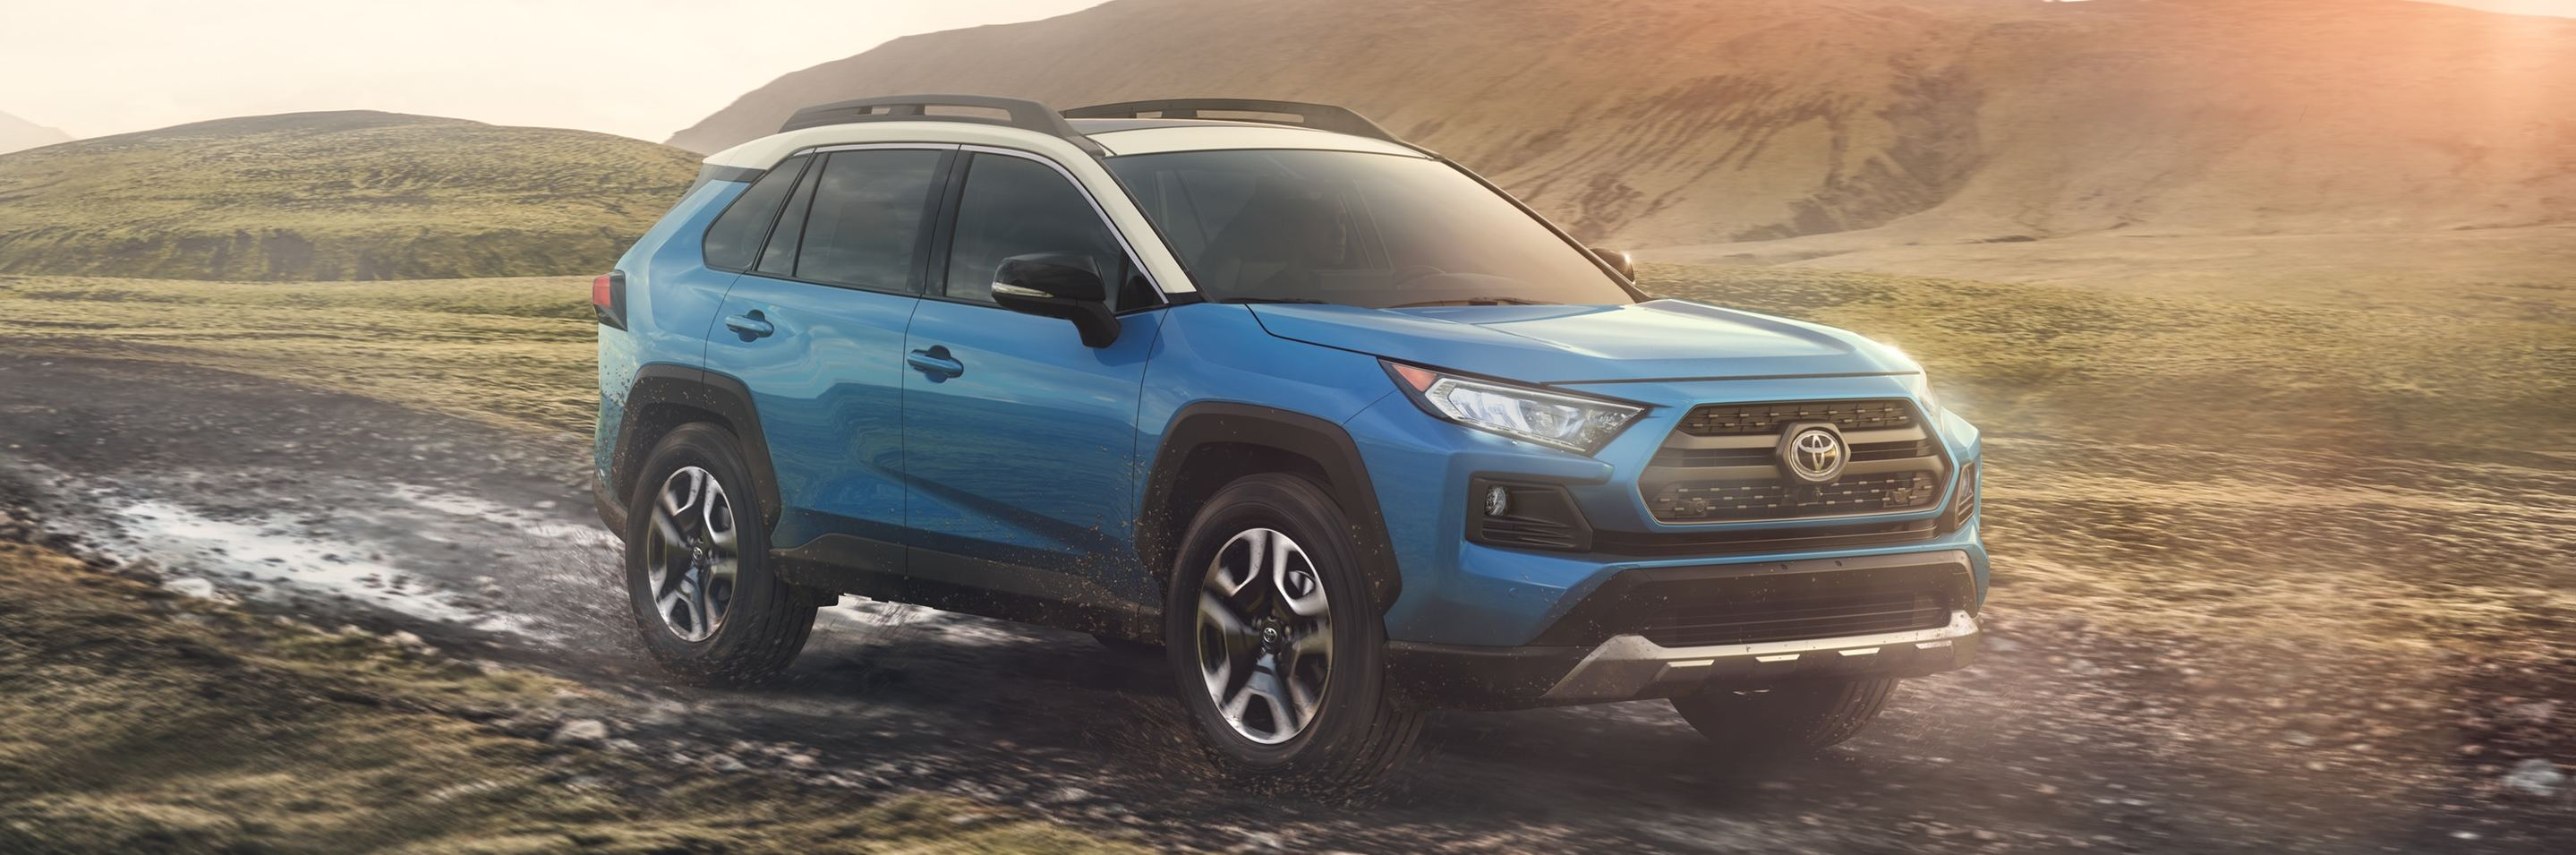 2020 Toyota RAV4 Leasing near Chicago, IL